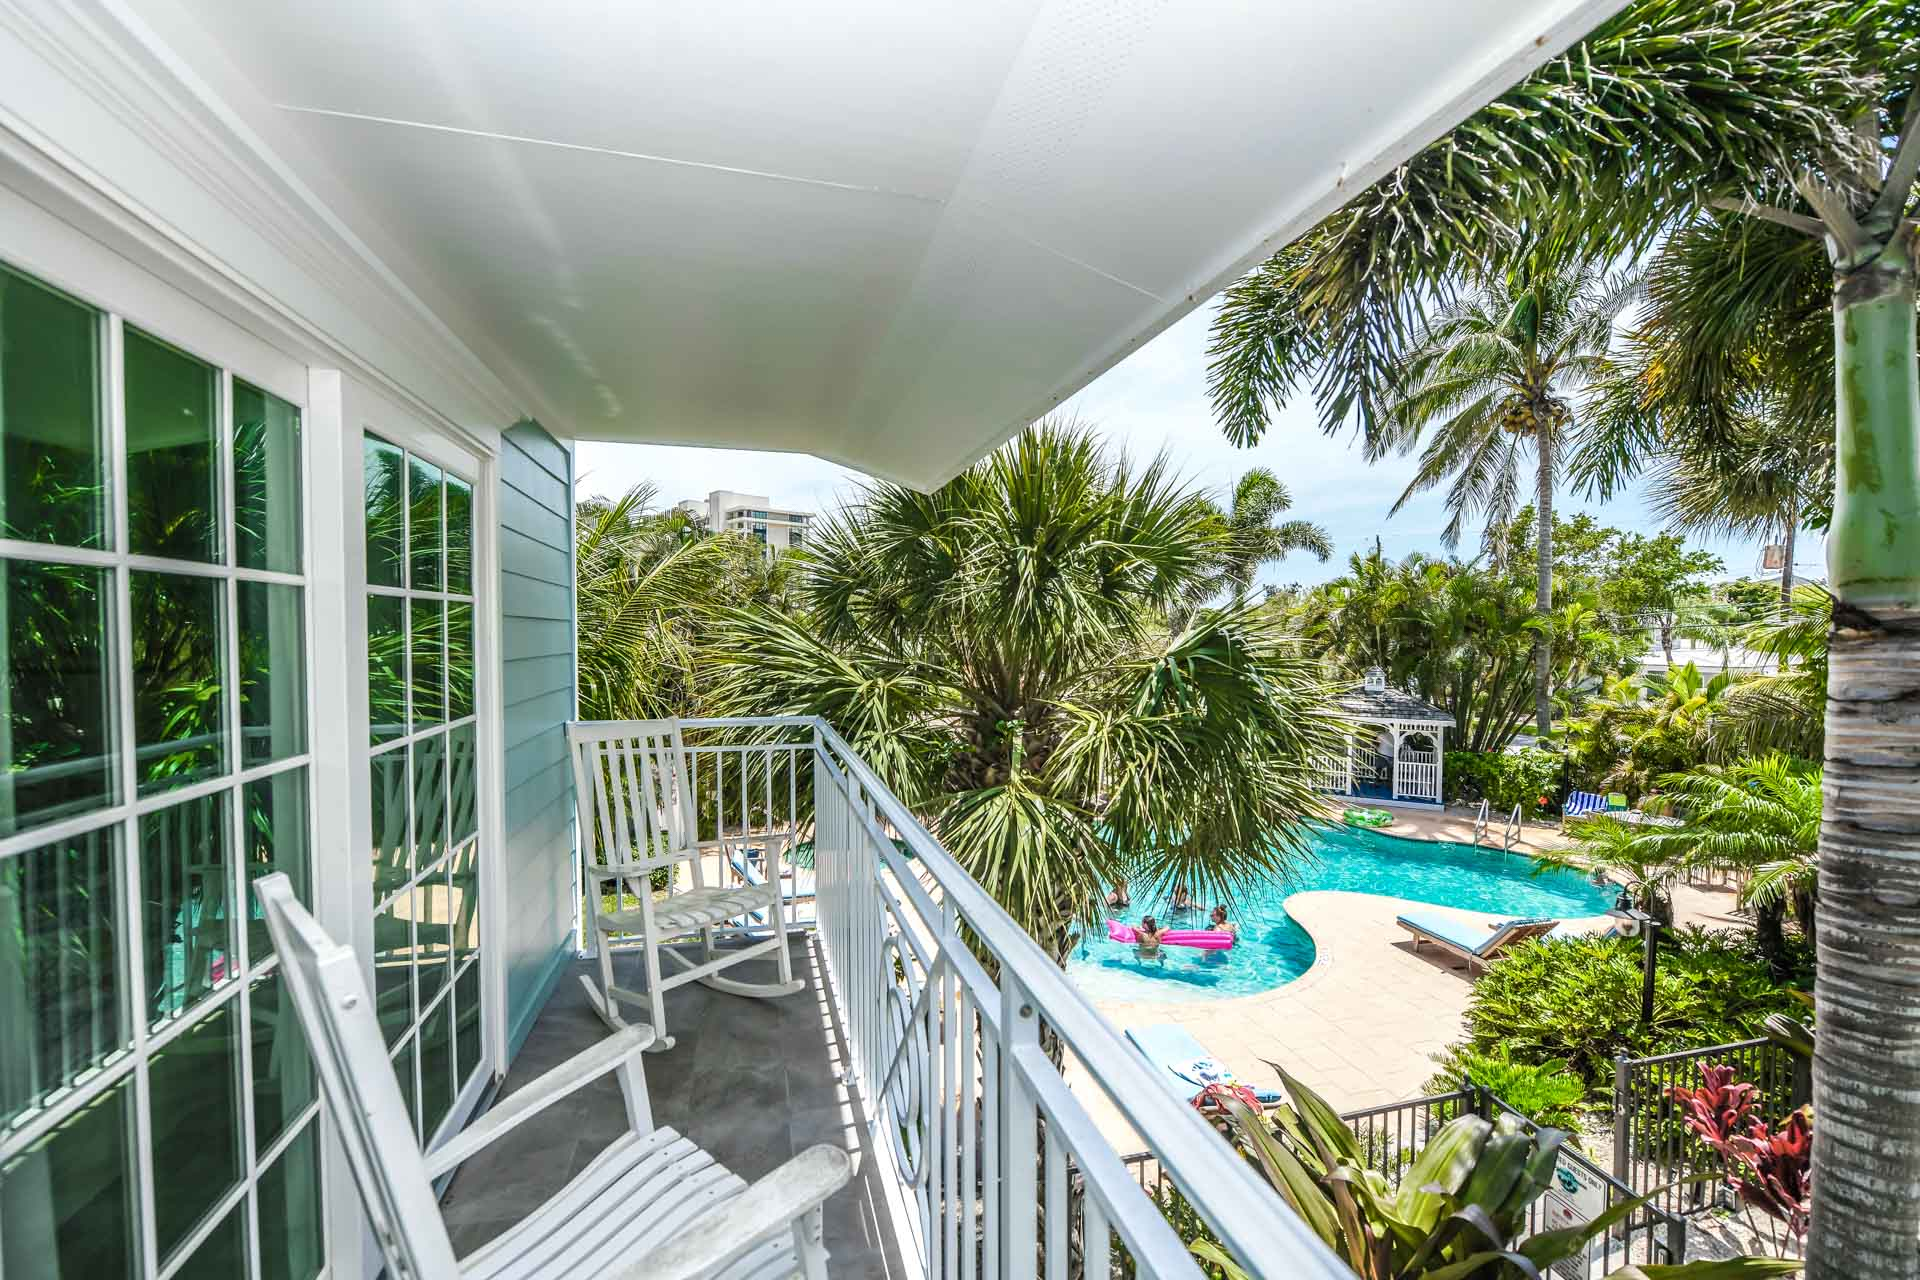 2 Bedroom. Private Balcony with Pool and Courtyard View